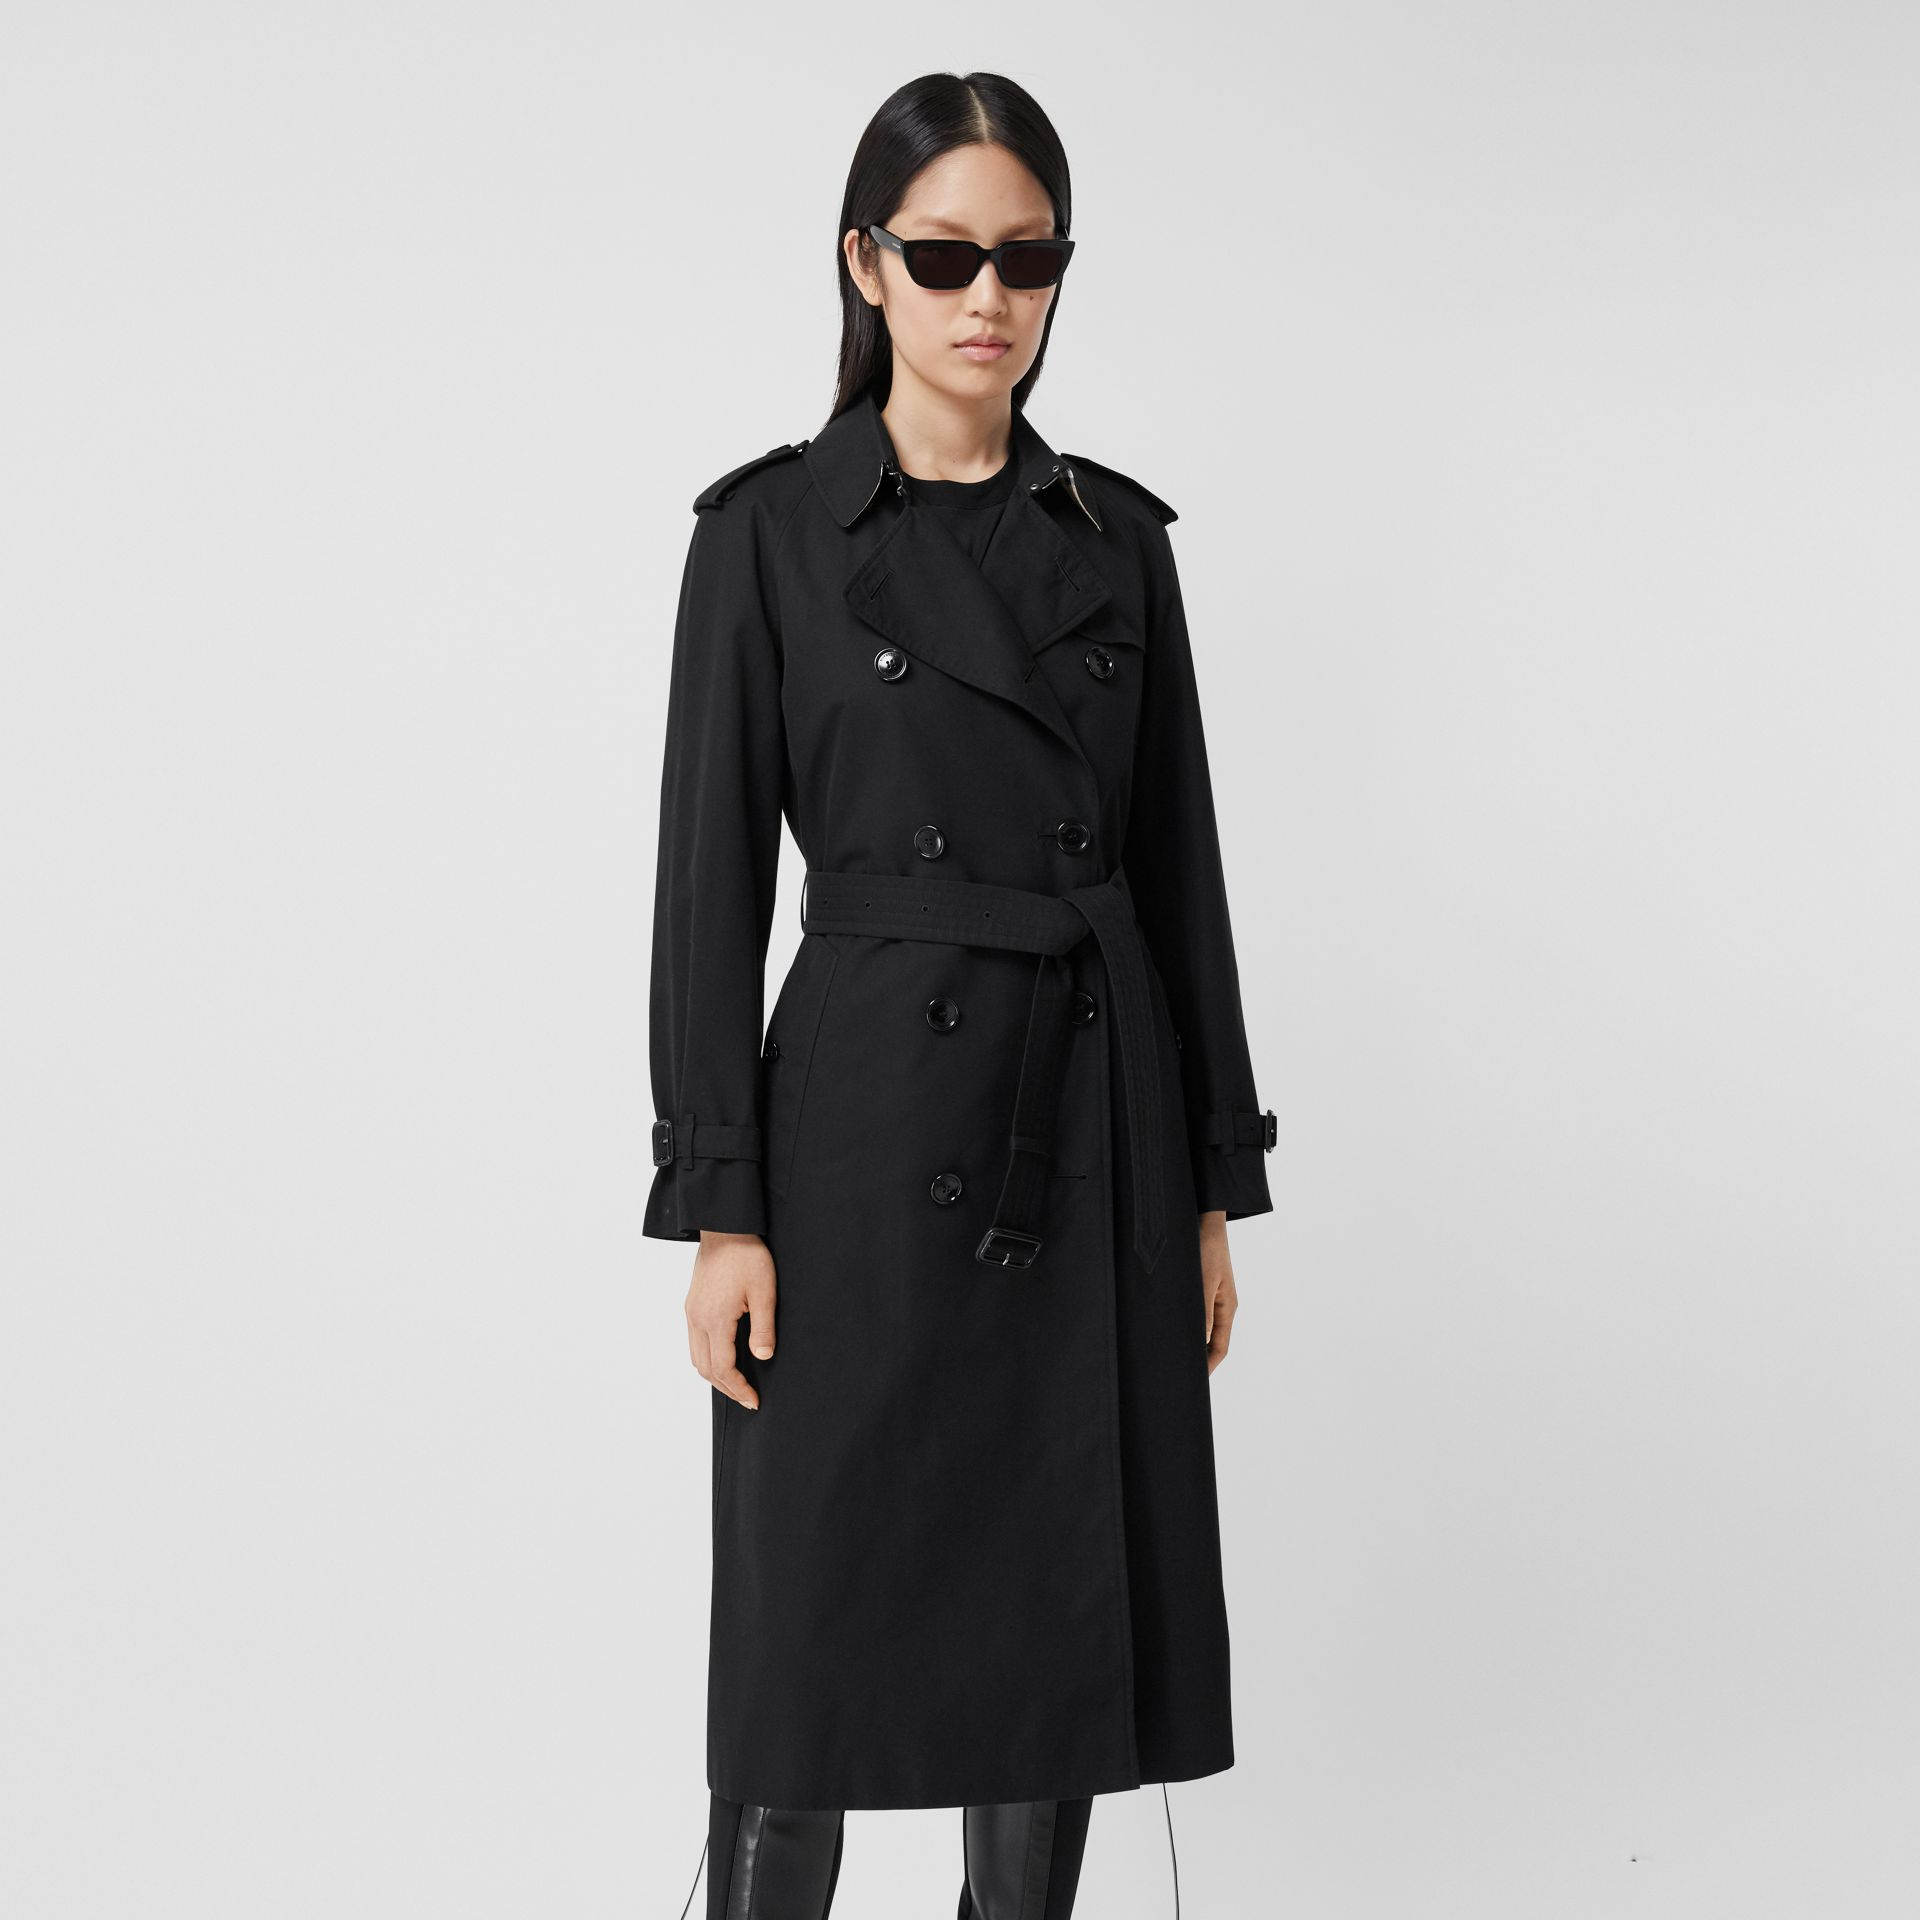 Langer Heritage-Trenchcoat in Waterloo-Passform (Schwarz) - Damen | Burberry - Galerie-Bild 5